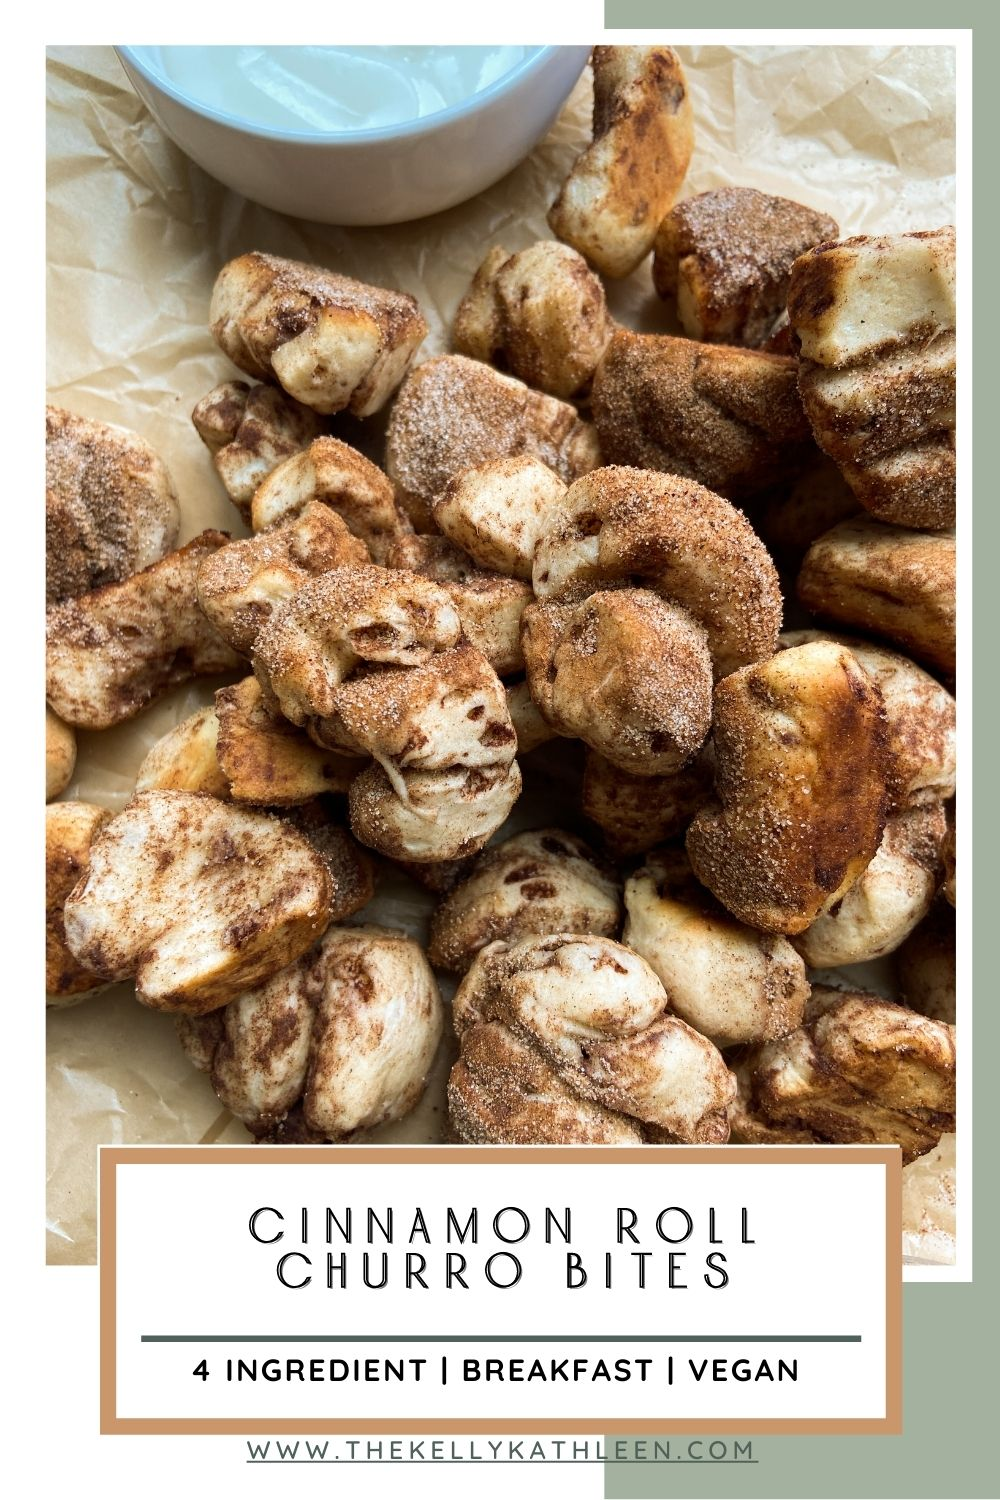 Cinnamon Roll Churro Bites